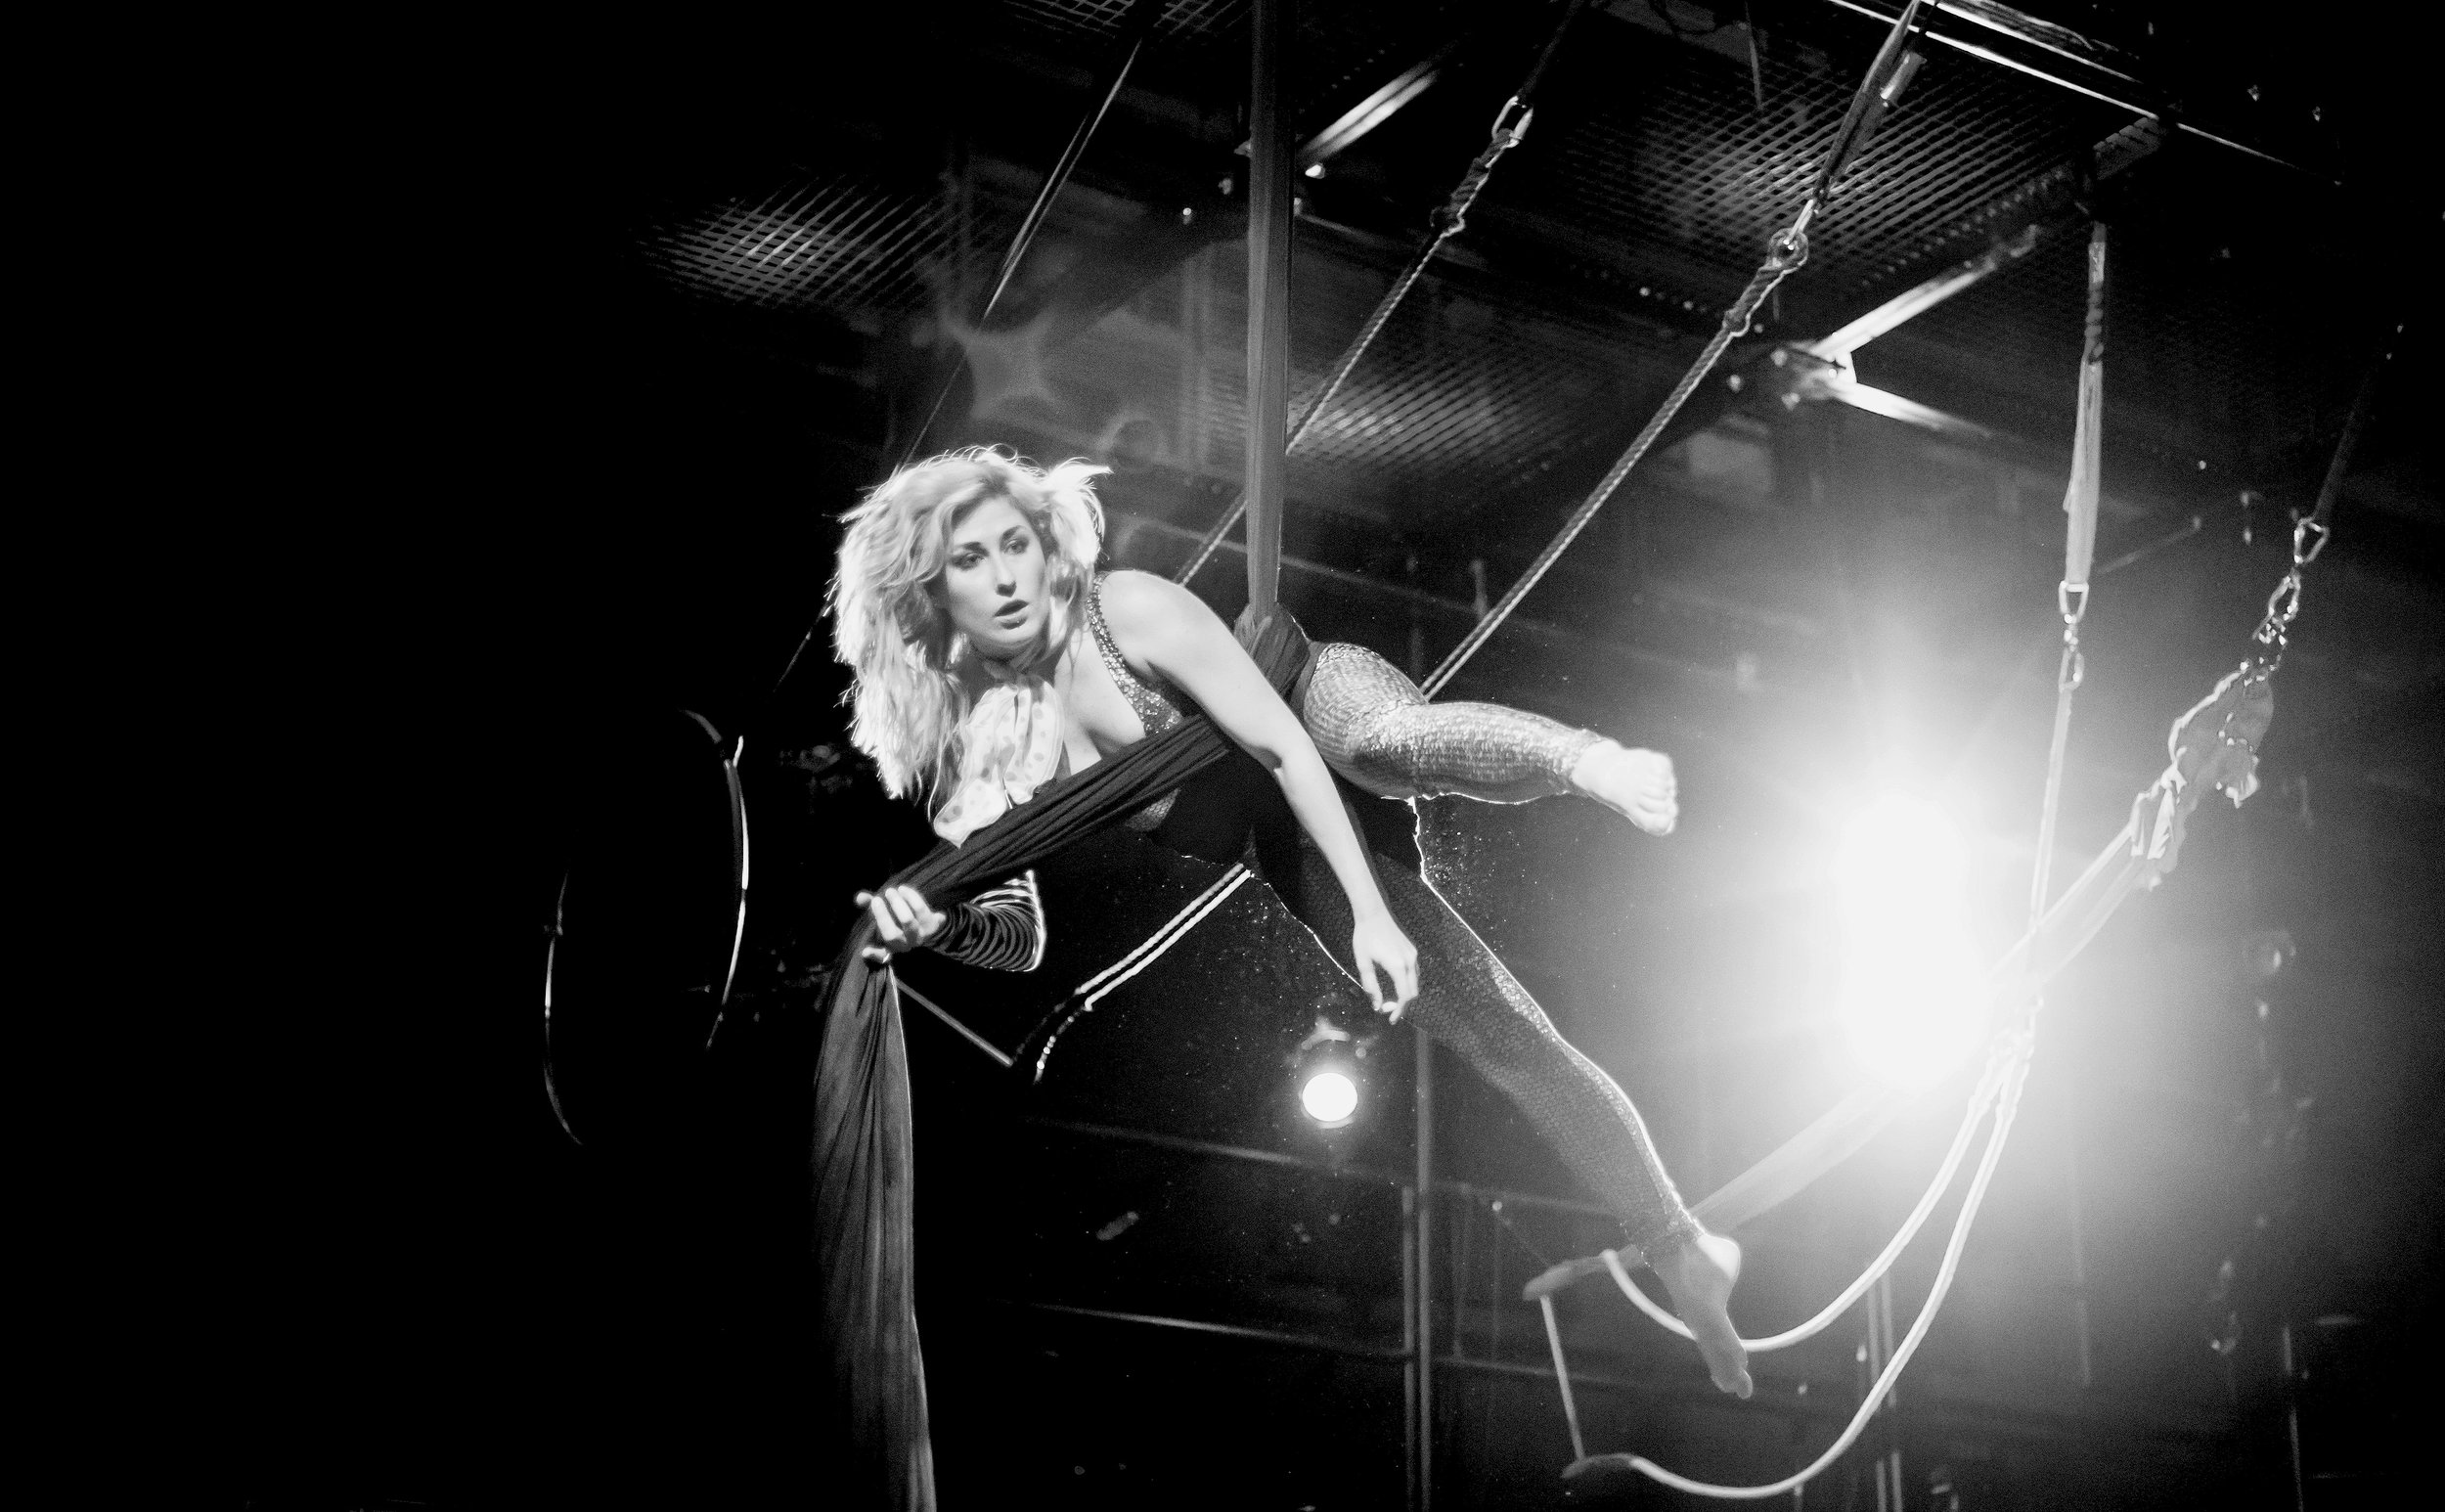 Benni Croft   Benni's beginnings in dance and theater go many years back. Theater, music, and dance have always been held close to her heart. She expresses these passions in her adult life through Aerials, Hoop, and other related expressions of performance and dance.